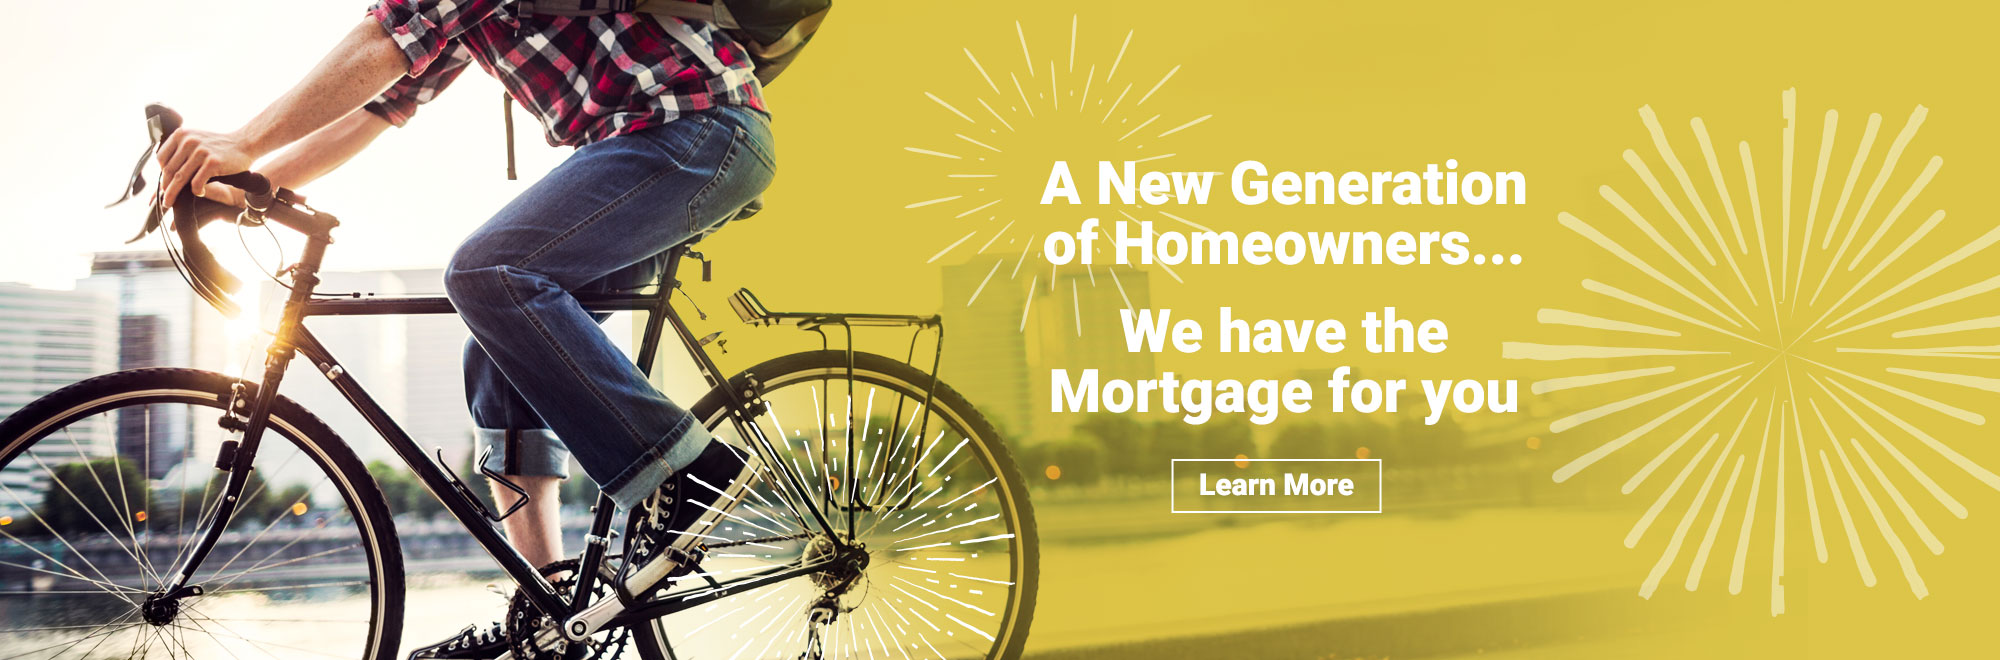 A New Generation of Homeowners... We Have the Mortgage for You